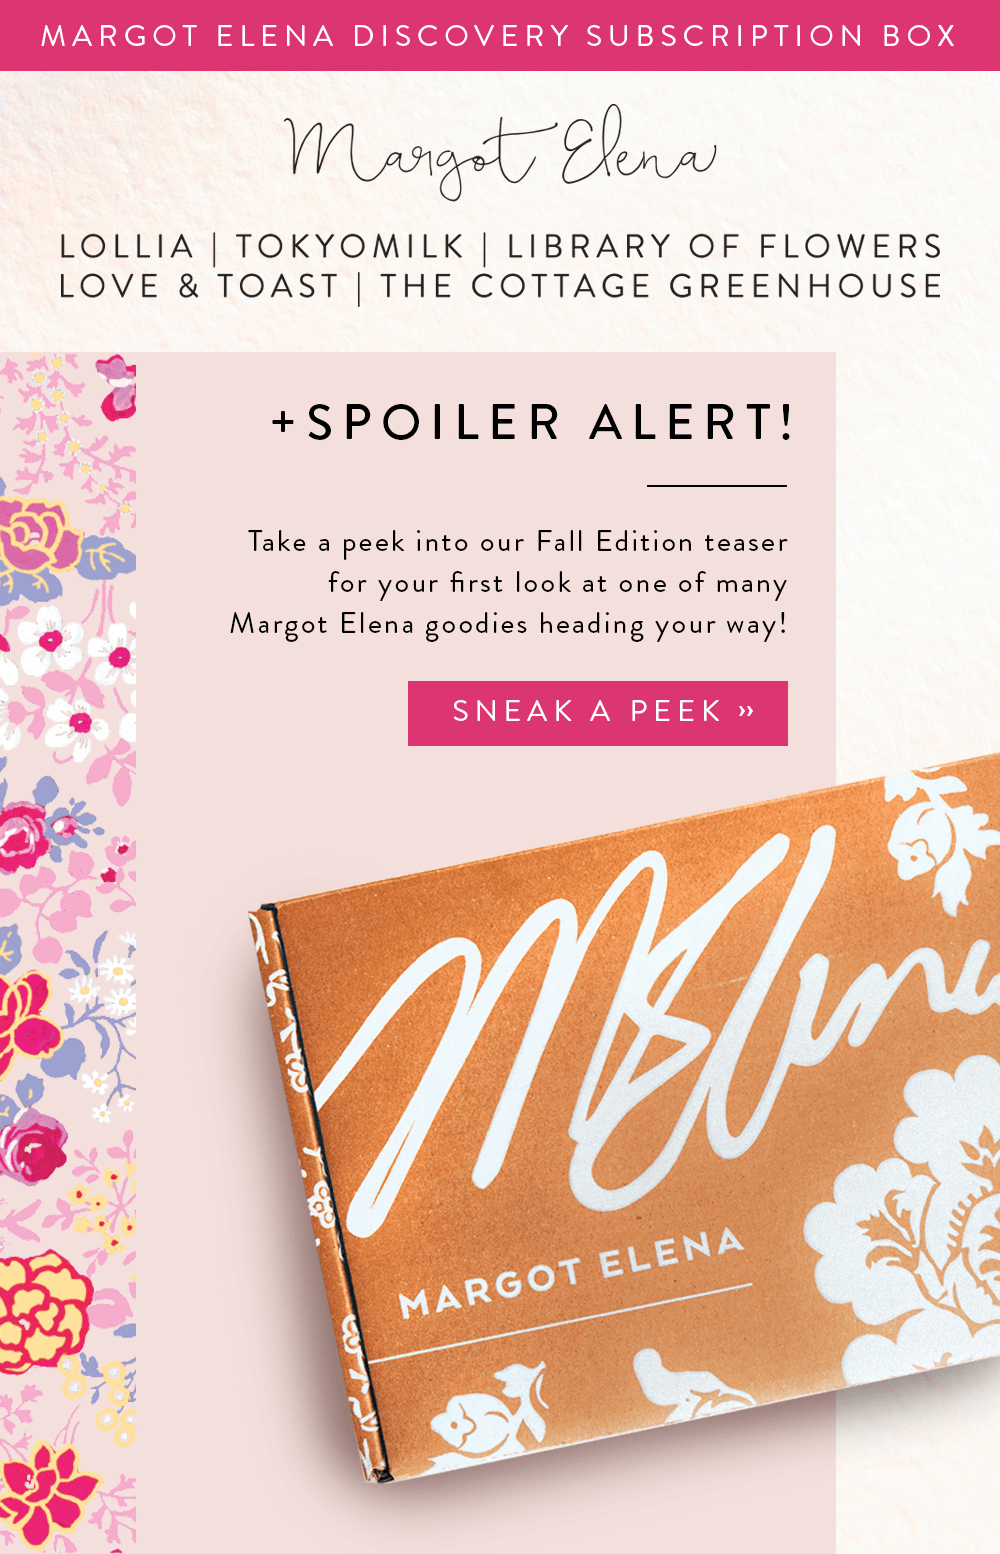 Fall 2018 Margot Elena Discovery Box Full Spoilers